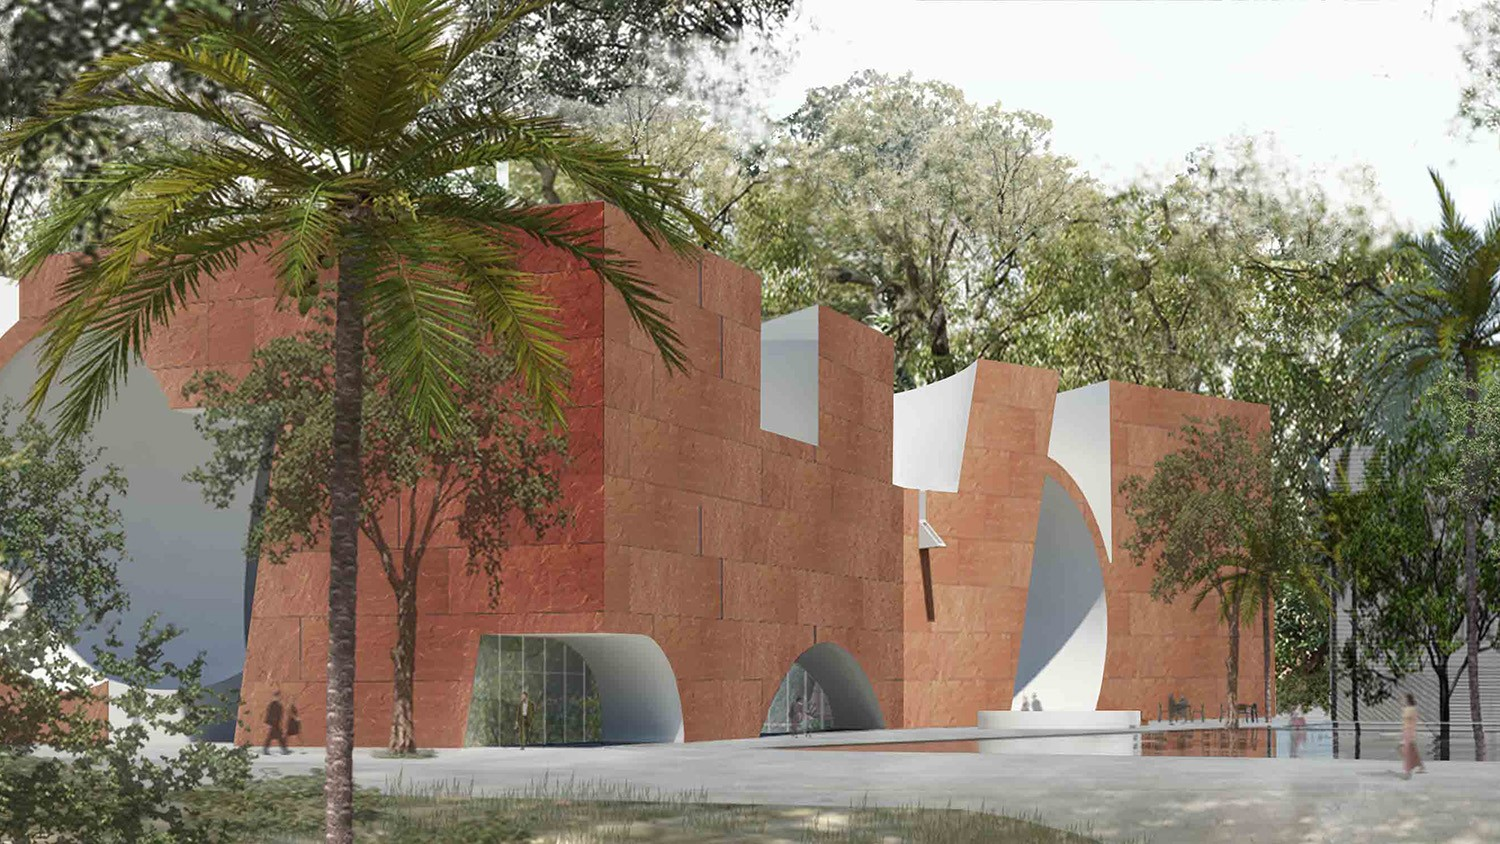 https://stevenholl.sfo2.digitaloceanspaces.com/uploads/projects/project-images/StevenHollArchitects_Mumbai_SHA_02_PAN view_extra long_WH.jpg